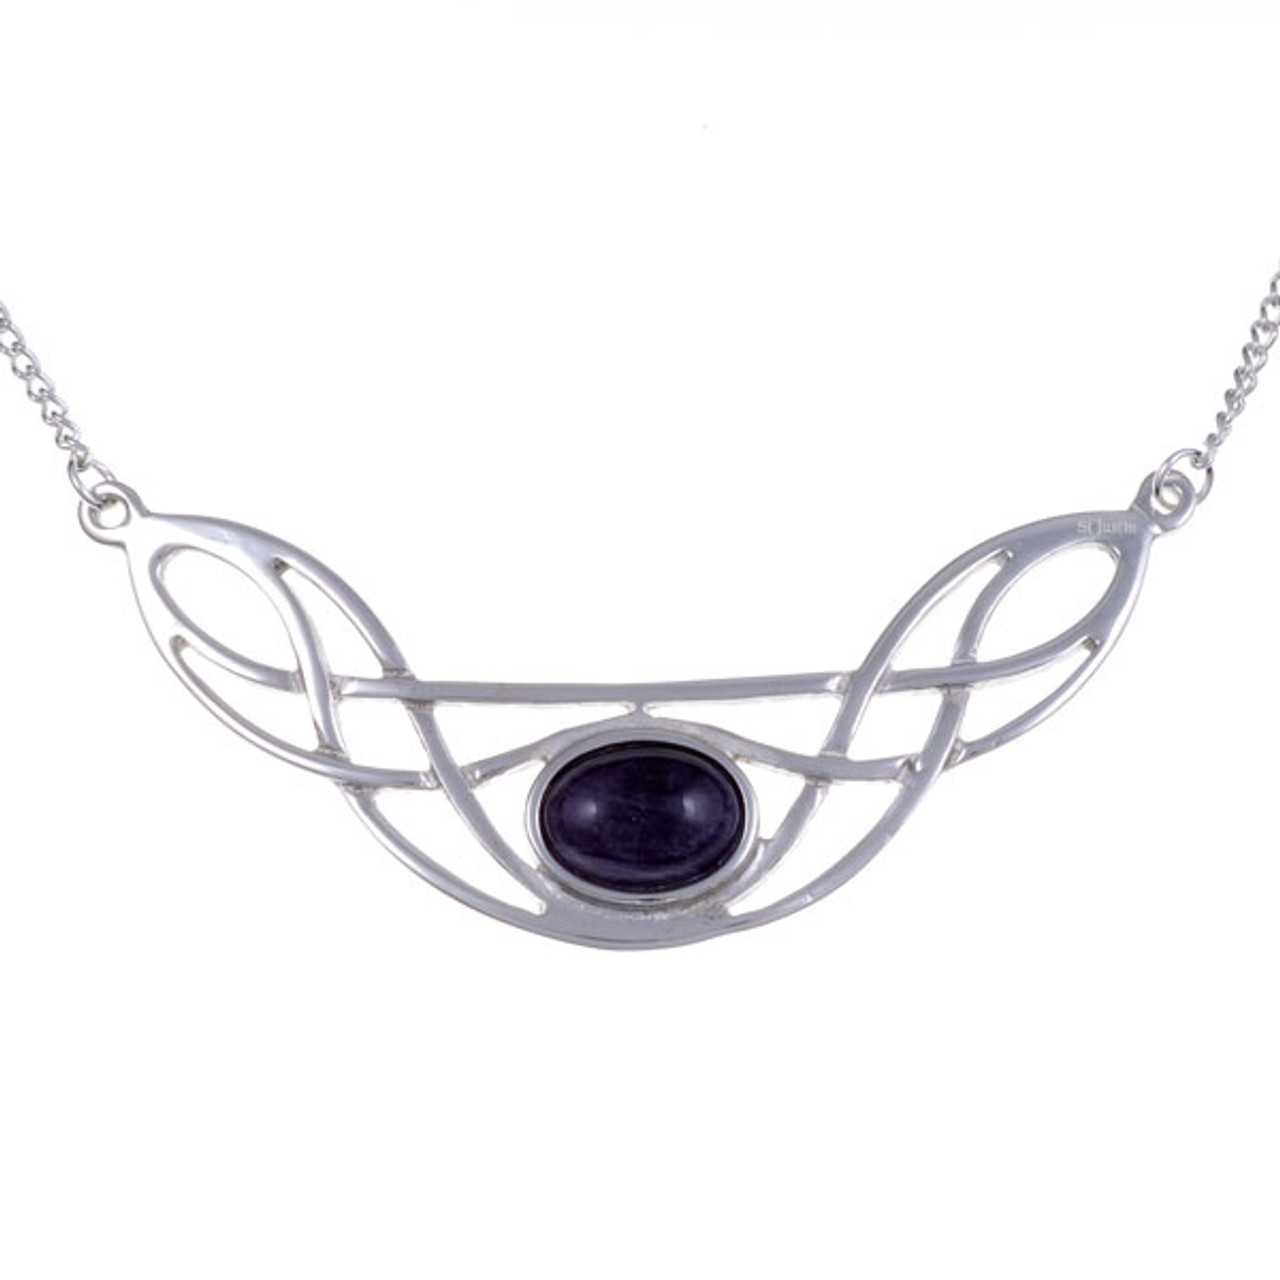 Celtic Knot Necklace with Amethyst Gemstone